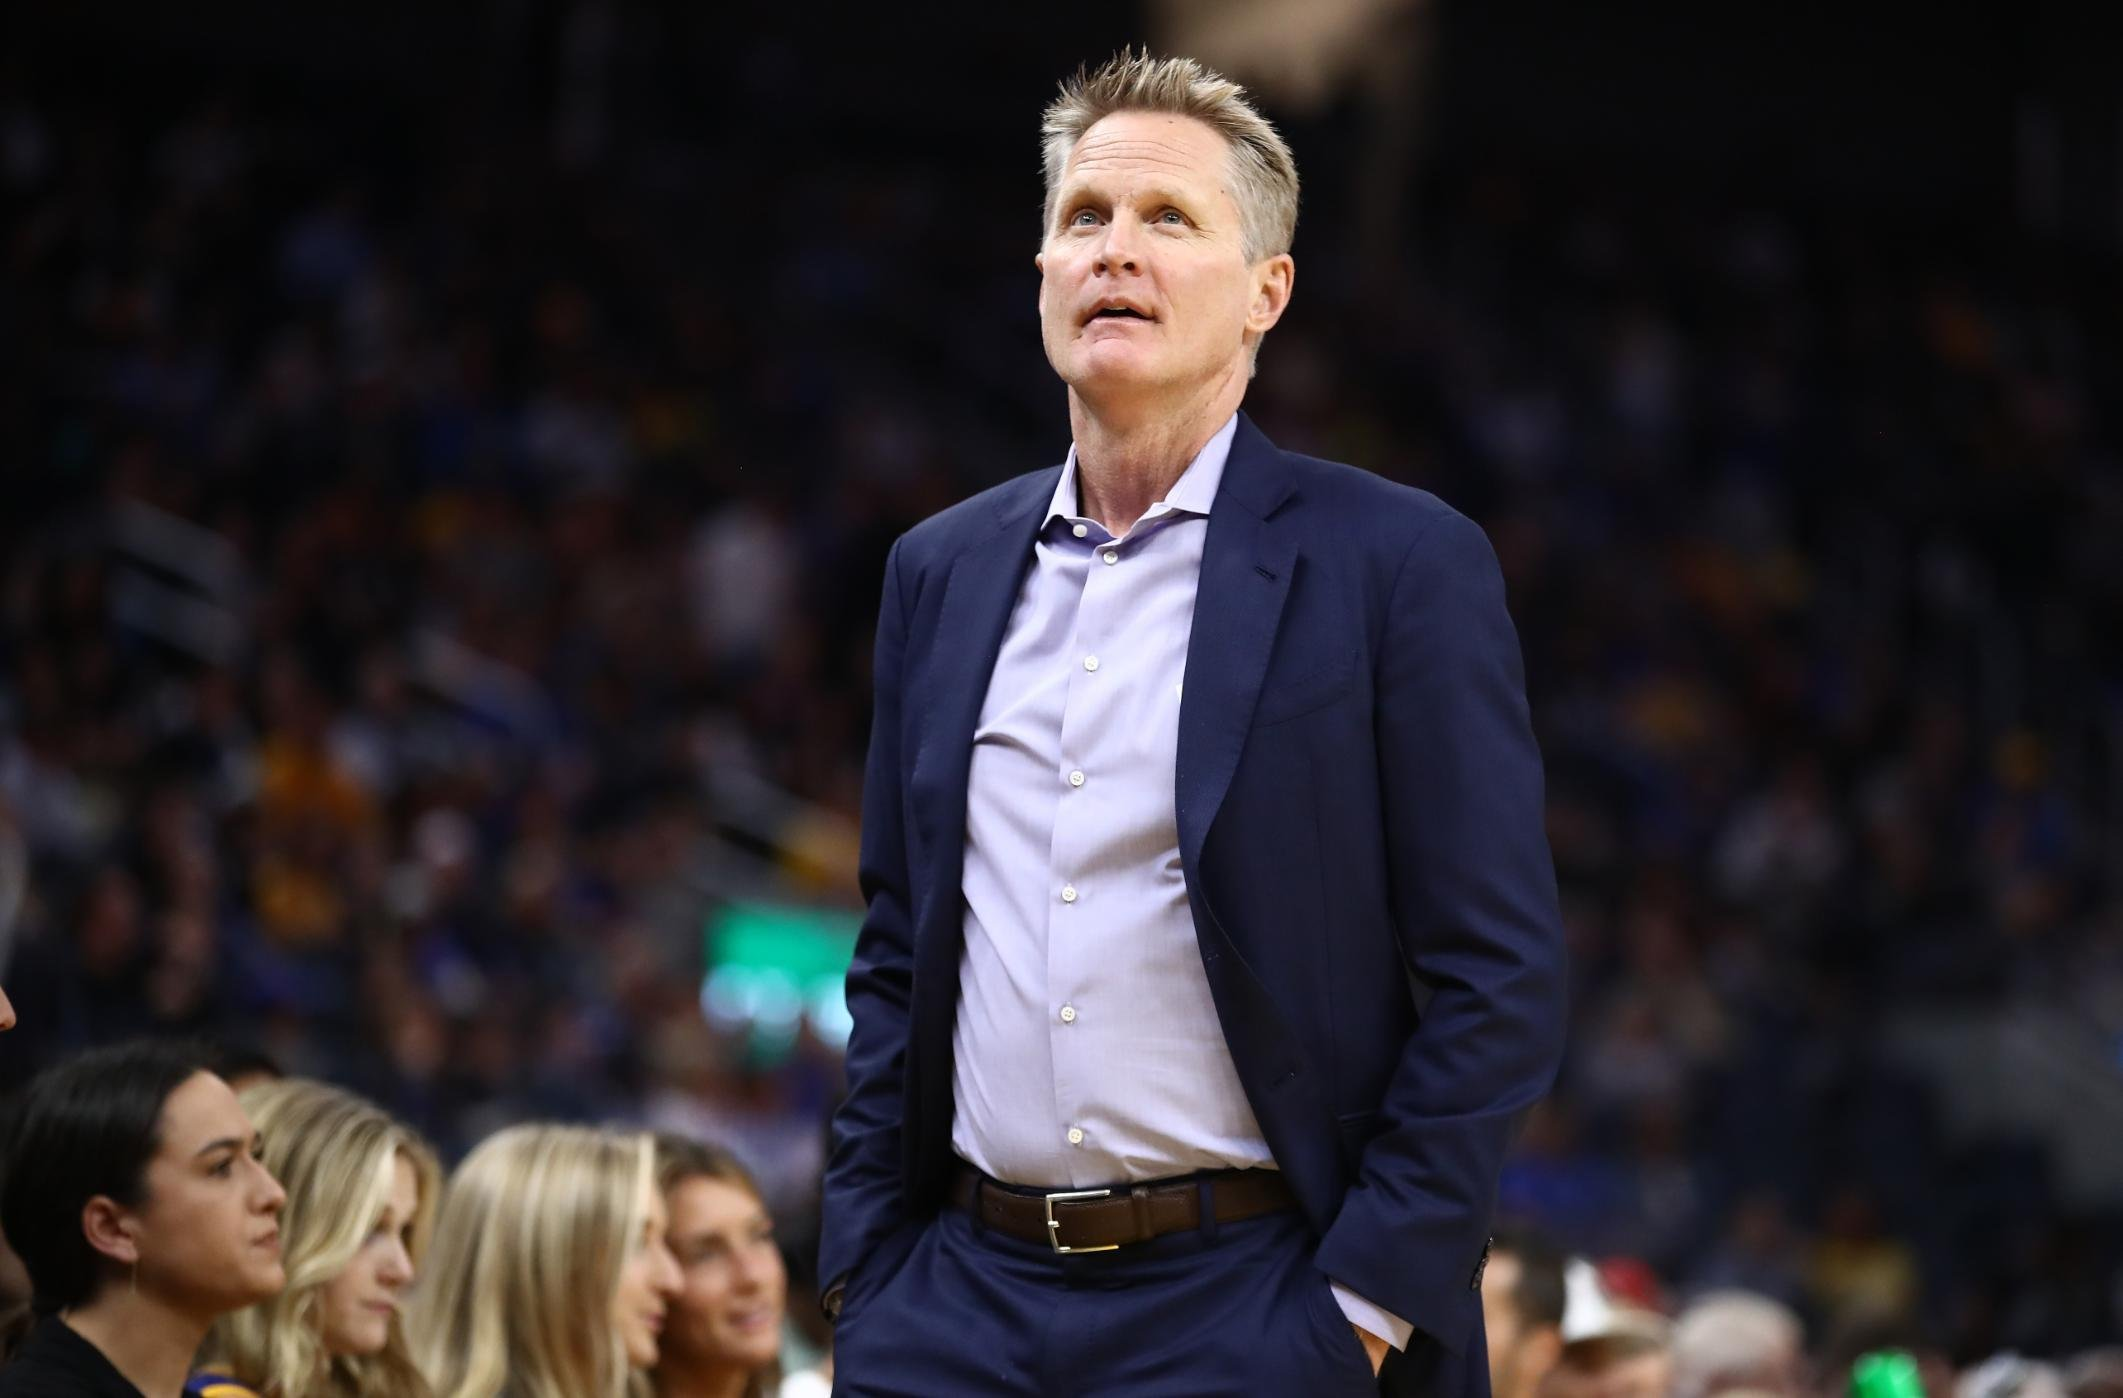 'Flush it down the toilet:' Golden State Warriors coach reacts to heaviest defeat in almost 50 years